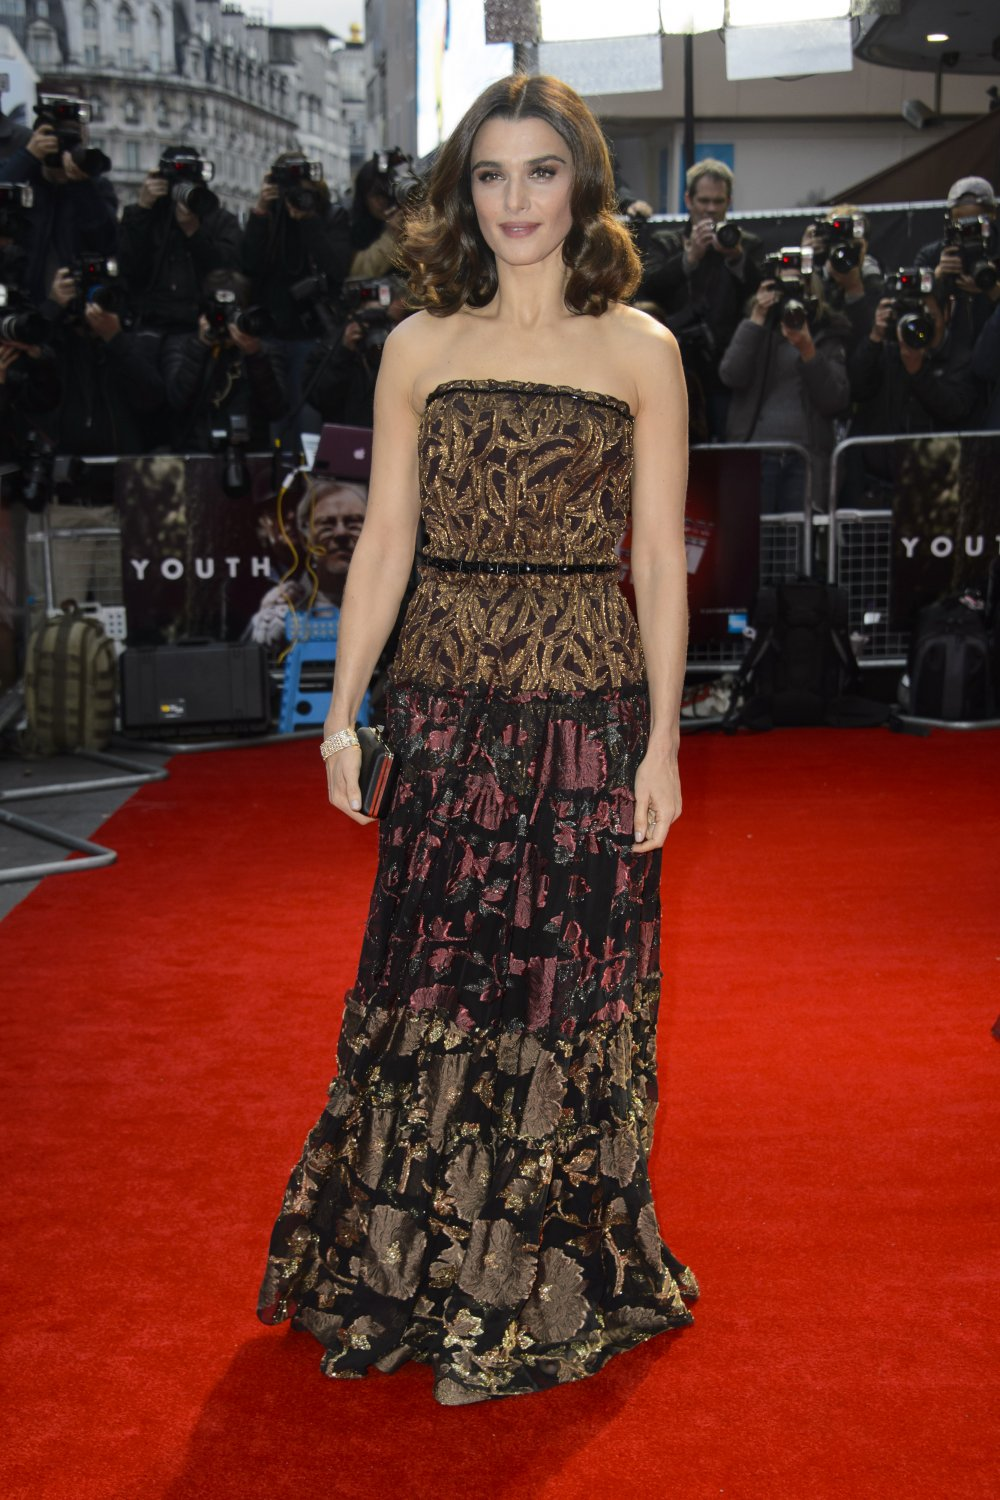 Rachel Weisz at the Youth premiere